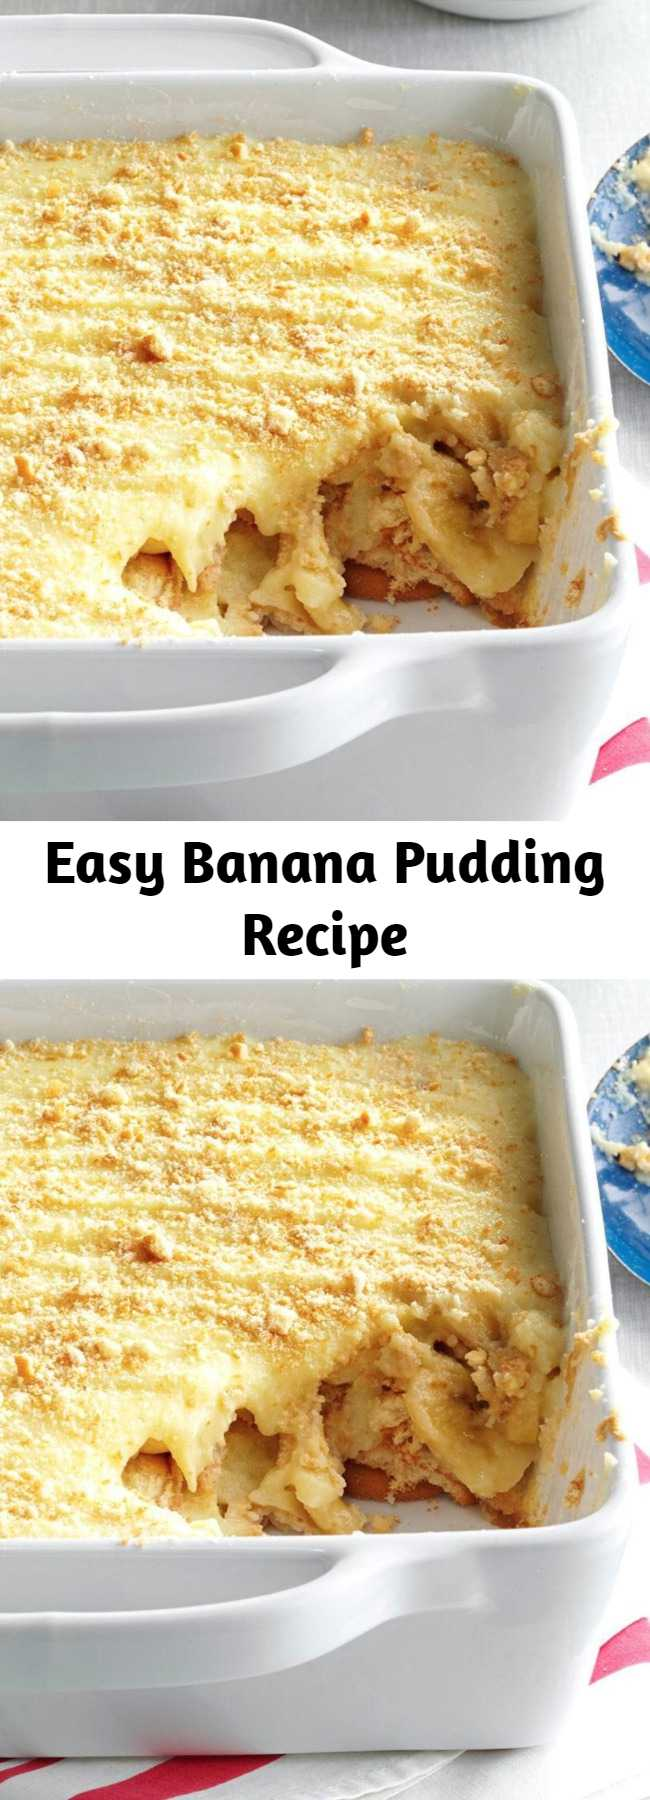 Easy Banana Pudding Recipe - It's a dessert, but you can have it for breakfast, lunch or dinner.